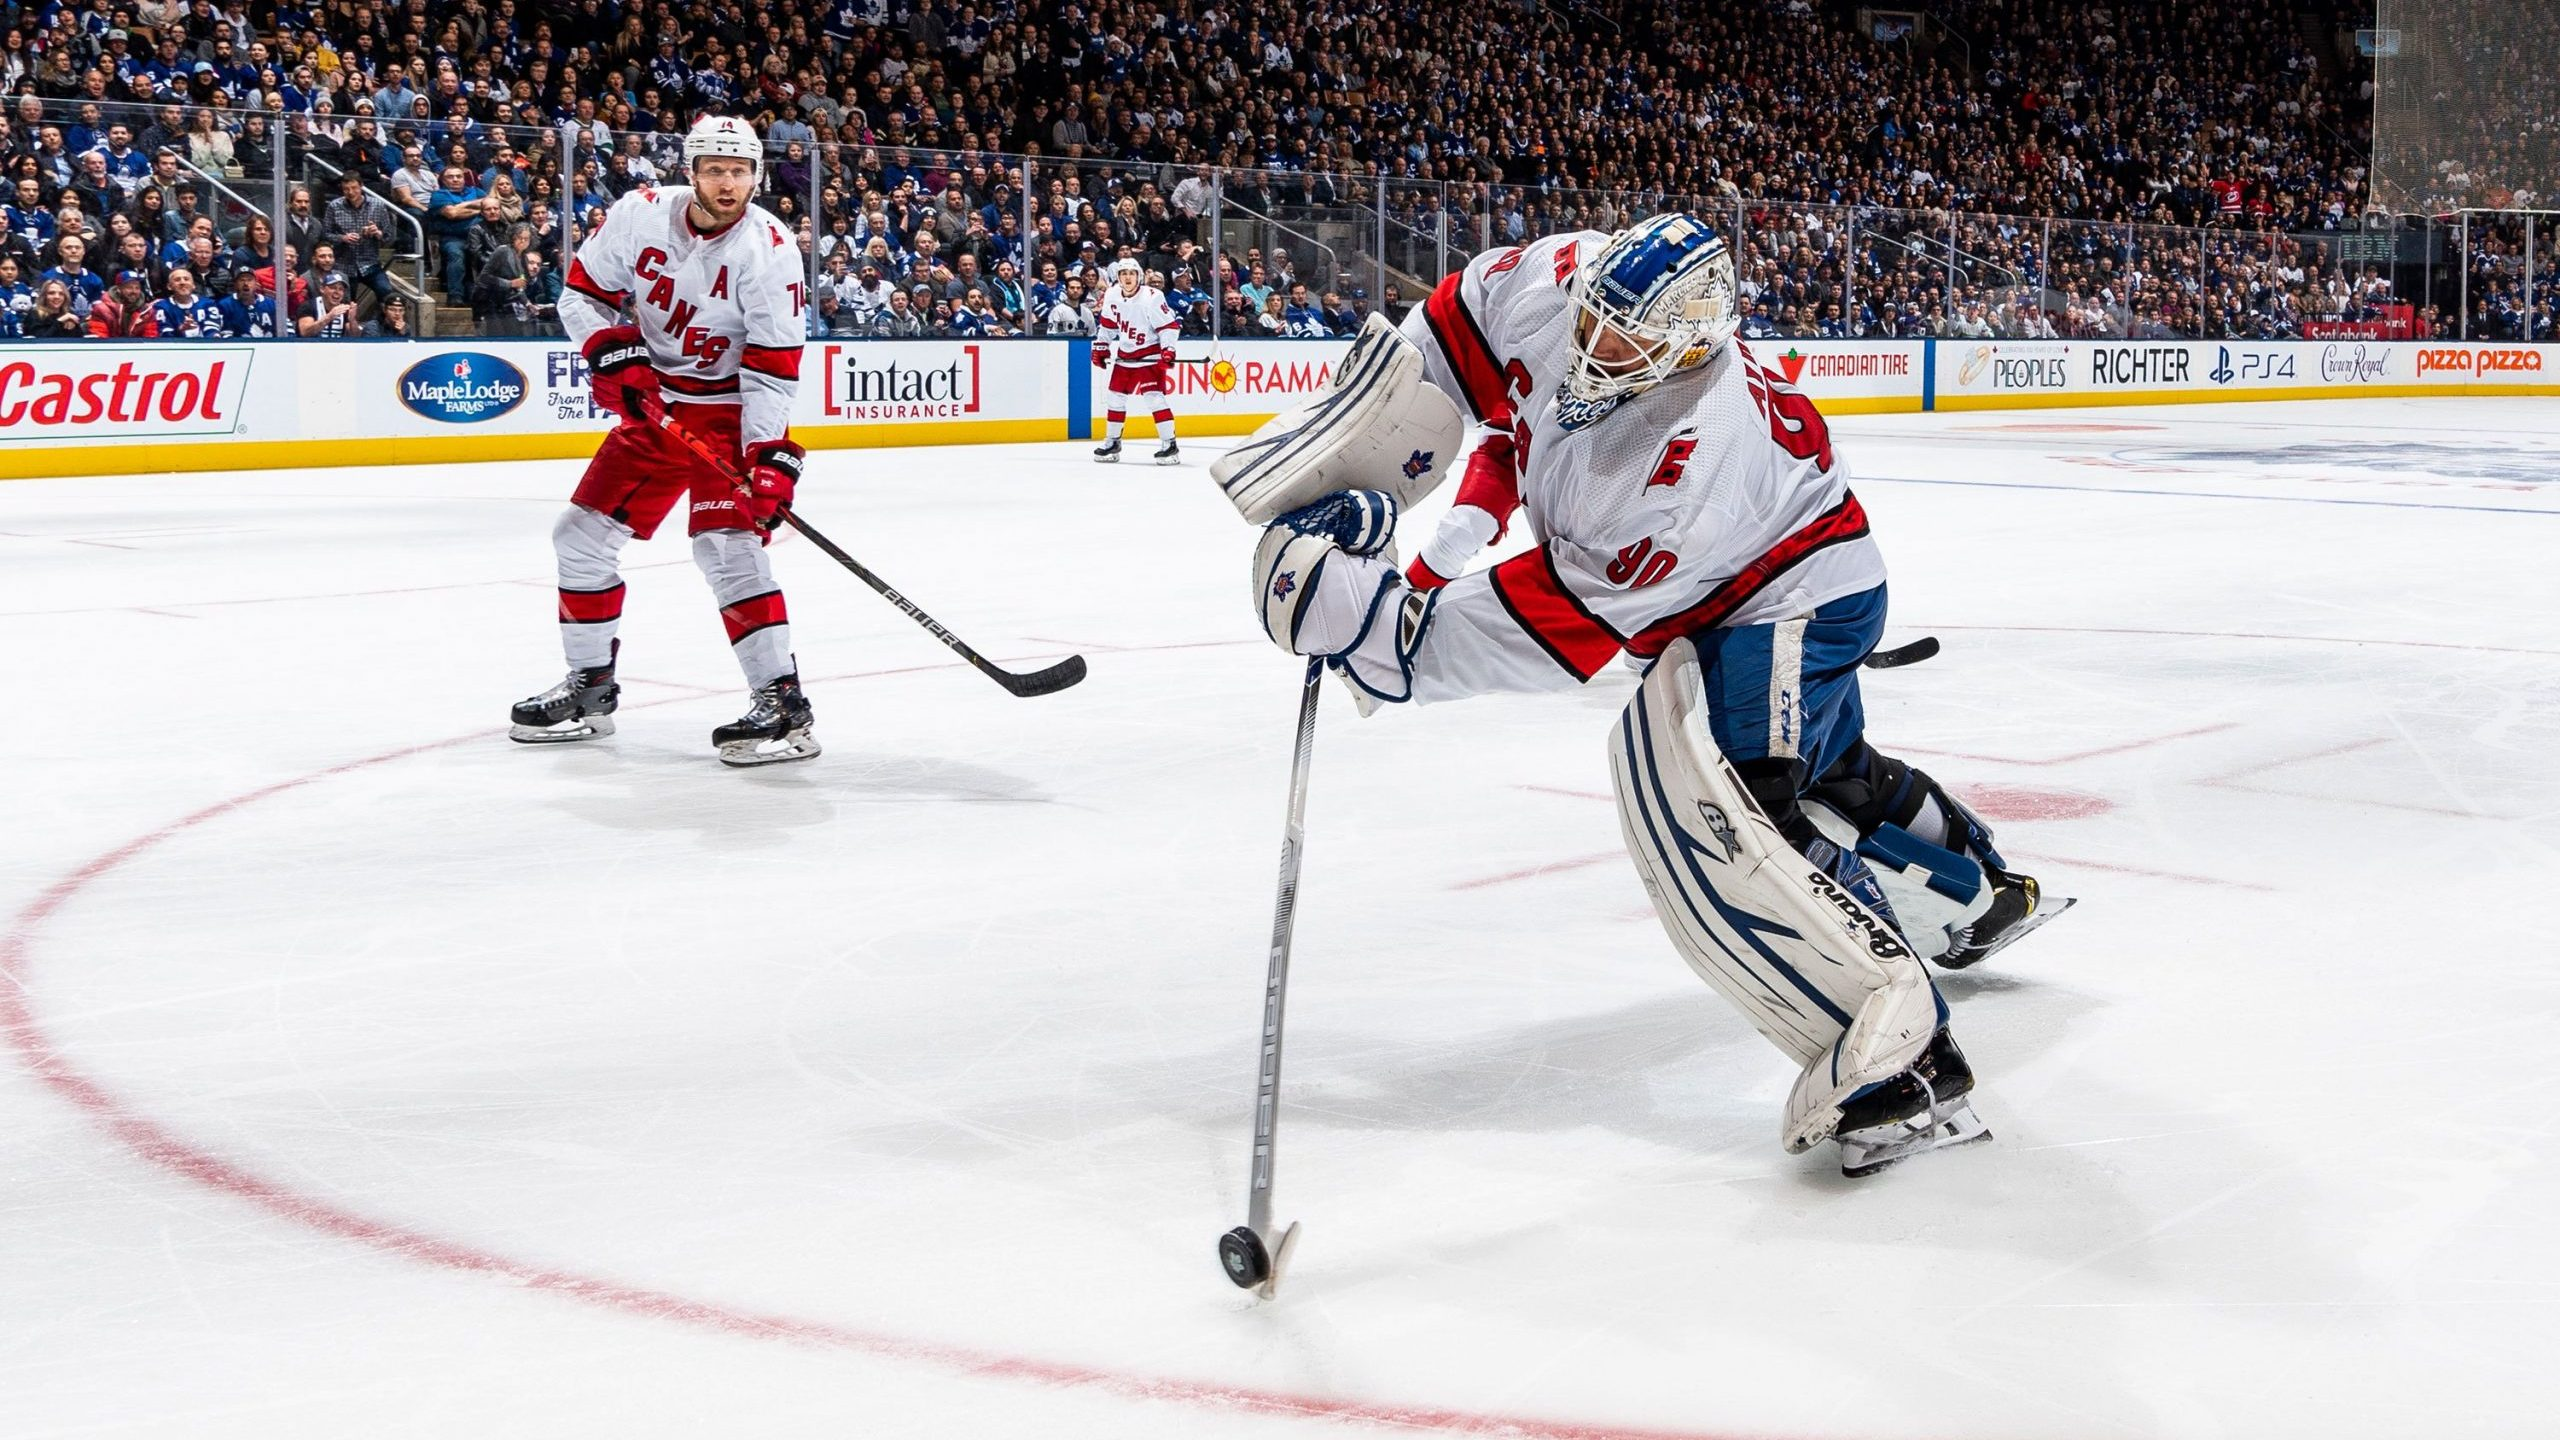 Dave Ayres of the Carolina Hurricanes plays the puck against the Toronto Maple Leafs during the second period at the Scotiabank Arena on Feb. 22, 2020 in Toronto, Ontario, Canada. (Credit: Kevin Sousa/NHLI via Getty Images)